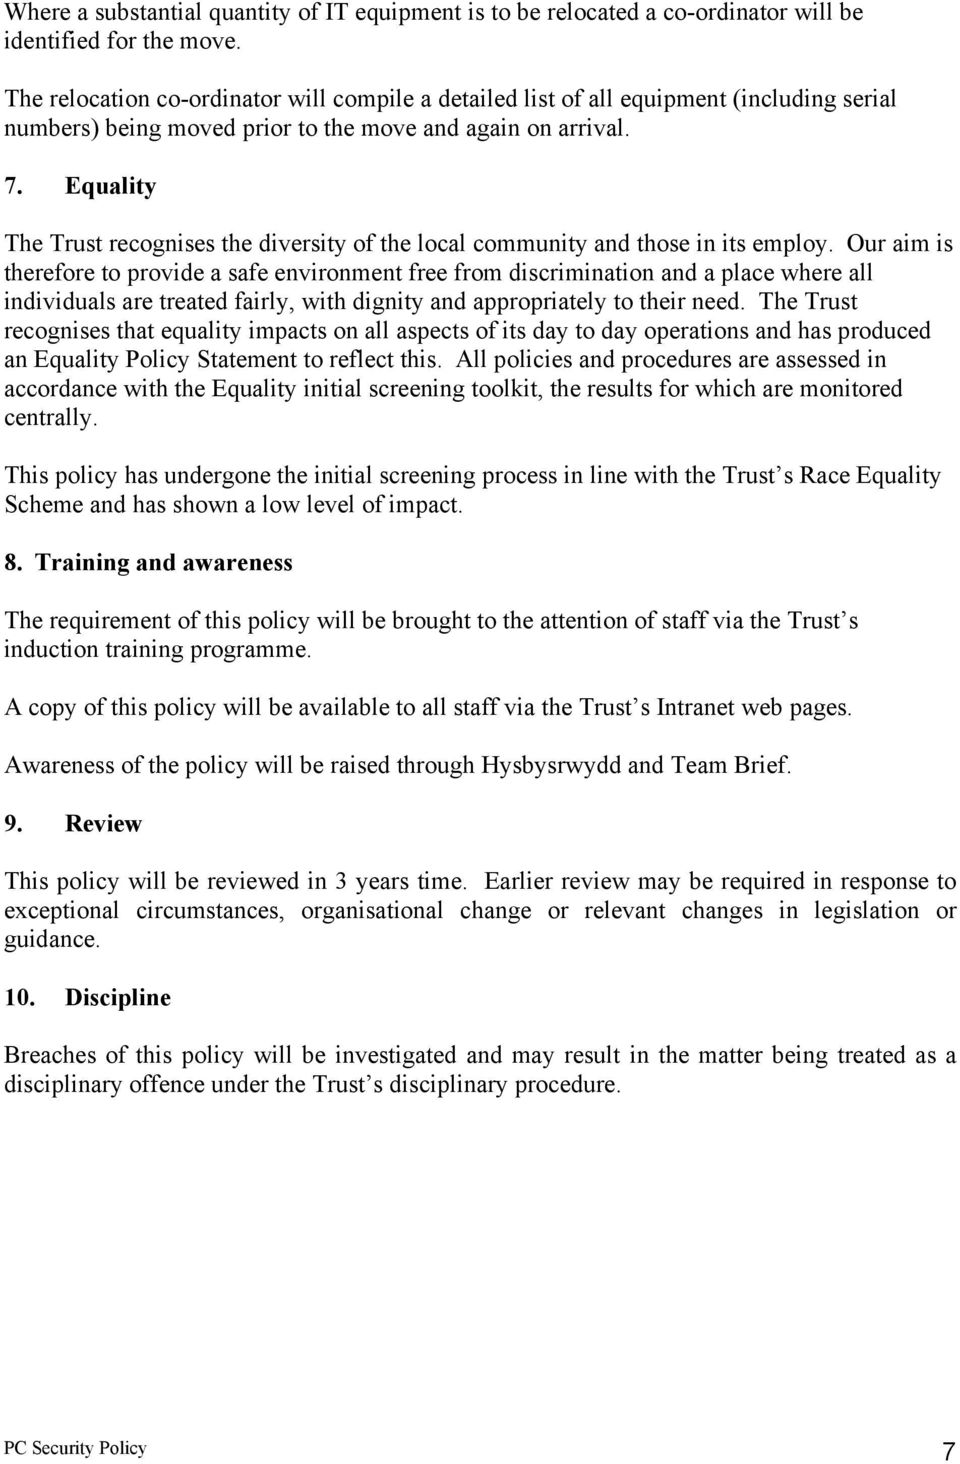 Equality The Trust recognises the diversity of the local community and those in its employ.